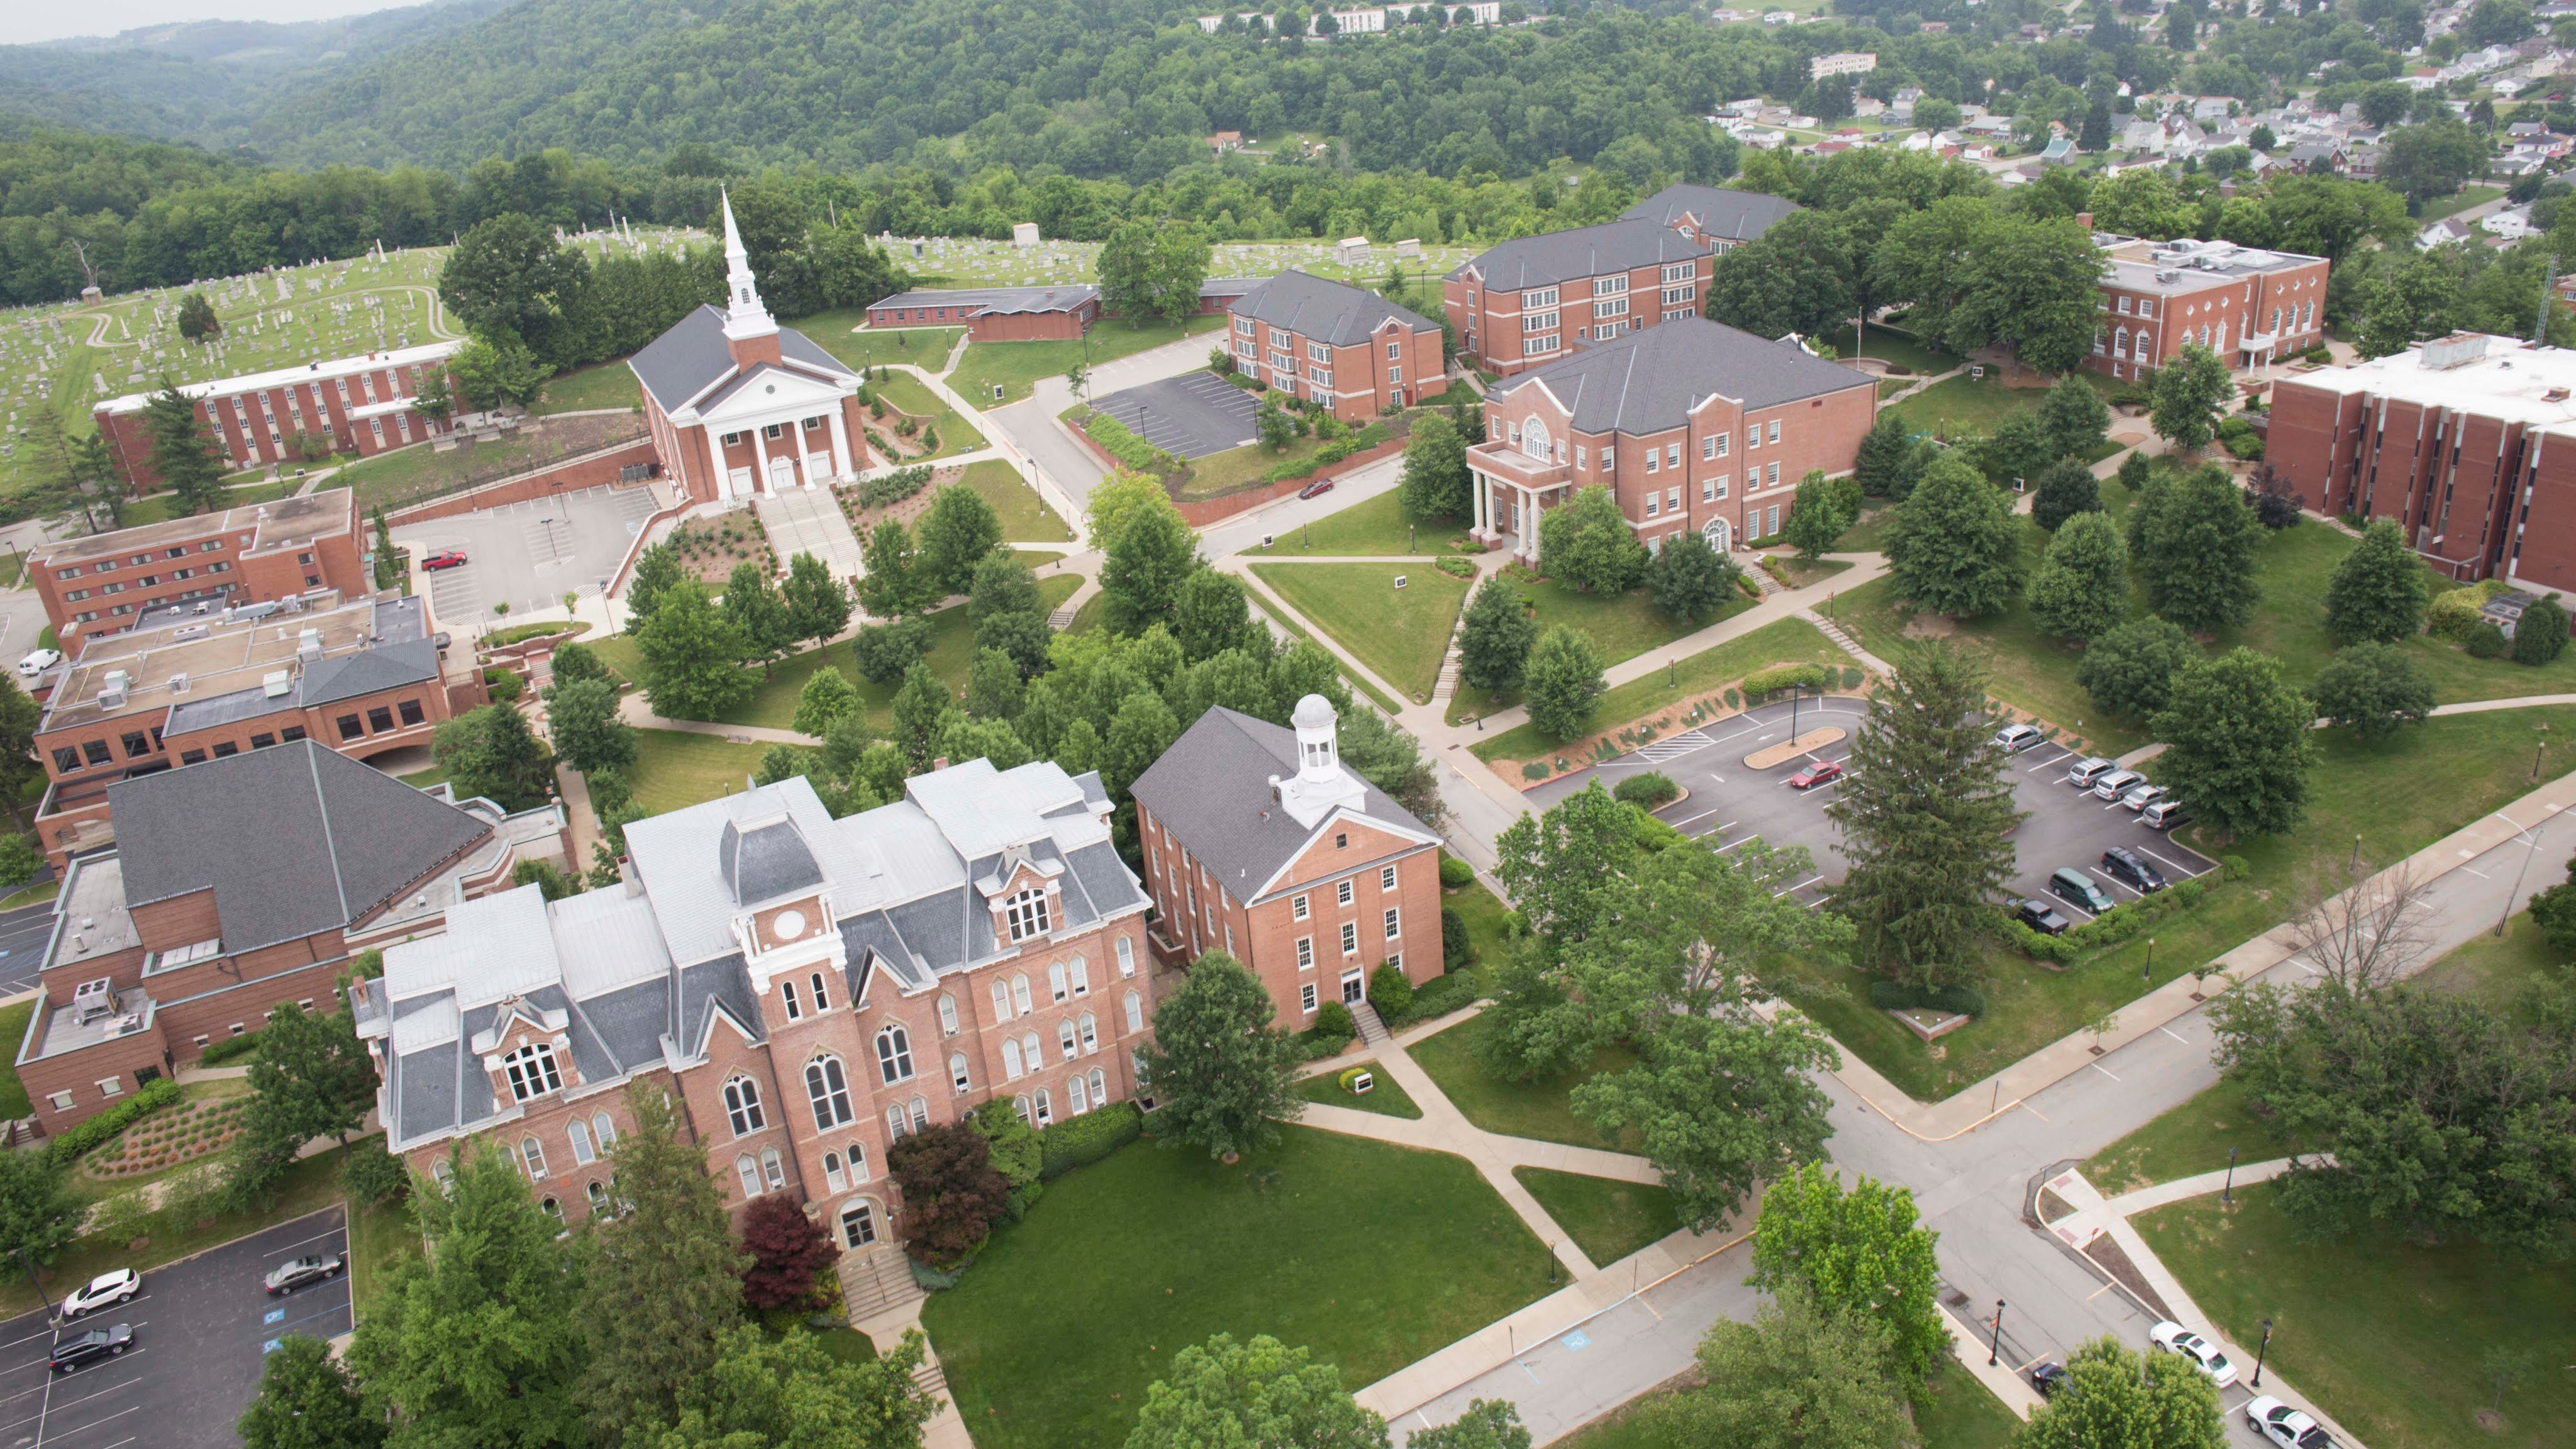 Waynesburg University campus with Miller Hall in the lower left.